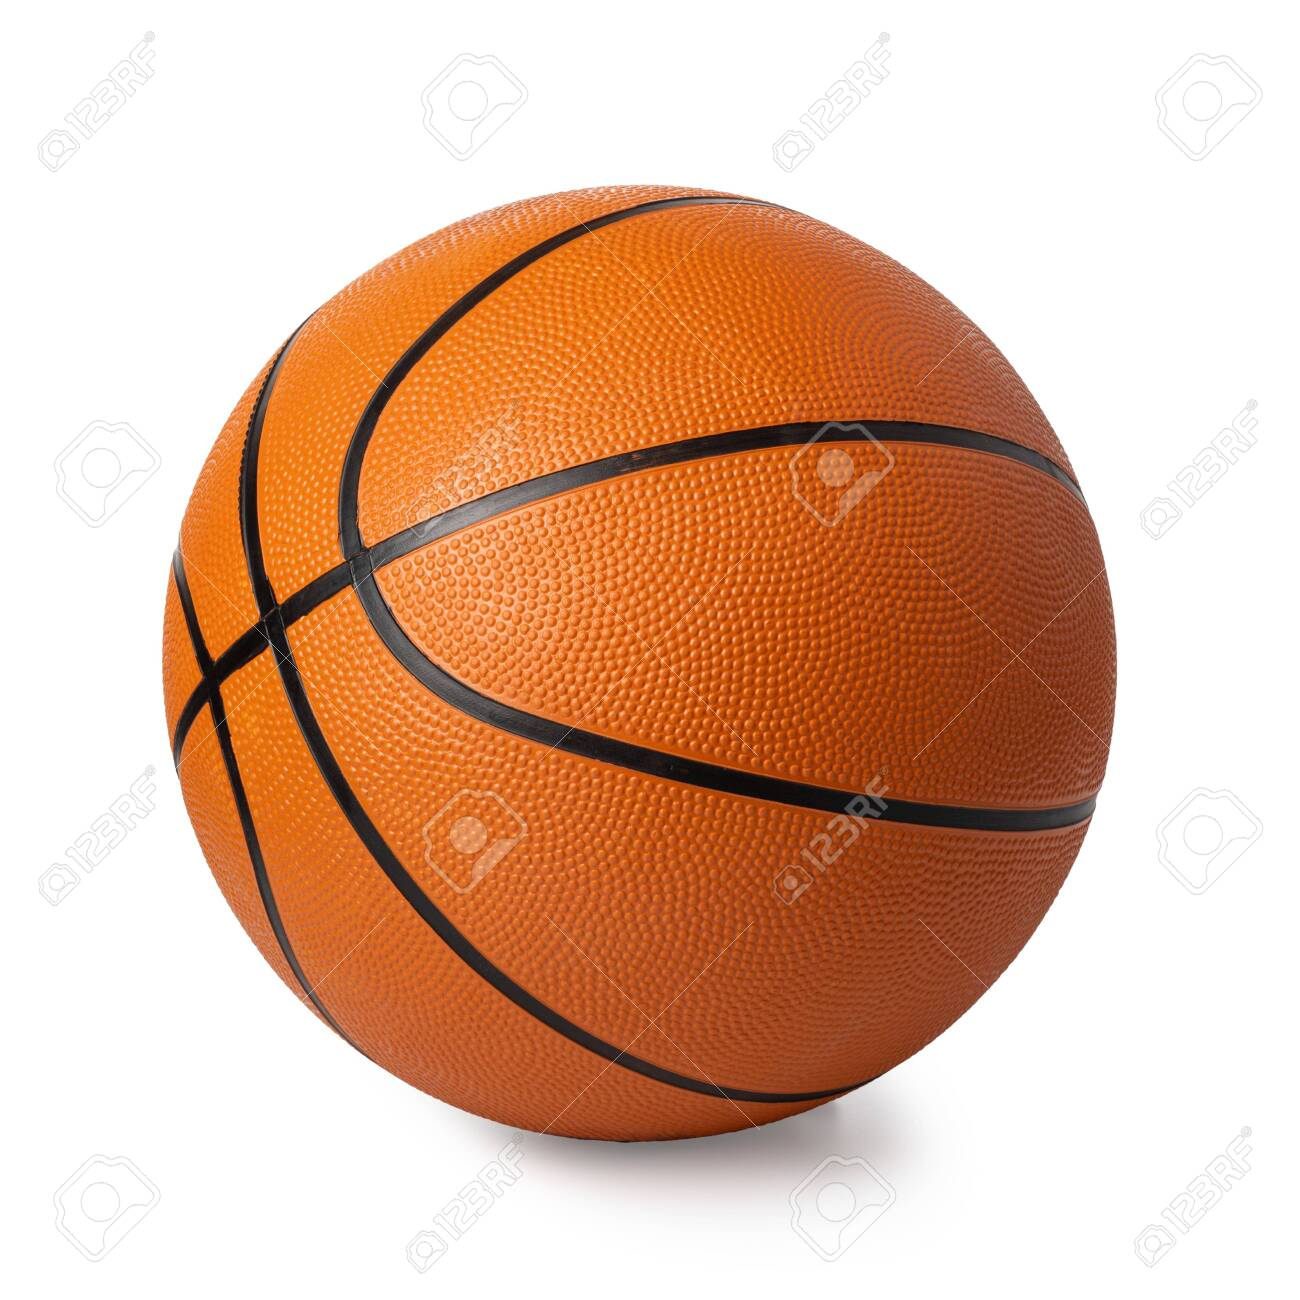 basketball ball isolated on white - 123398949